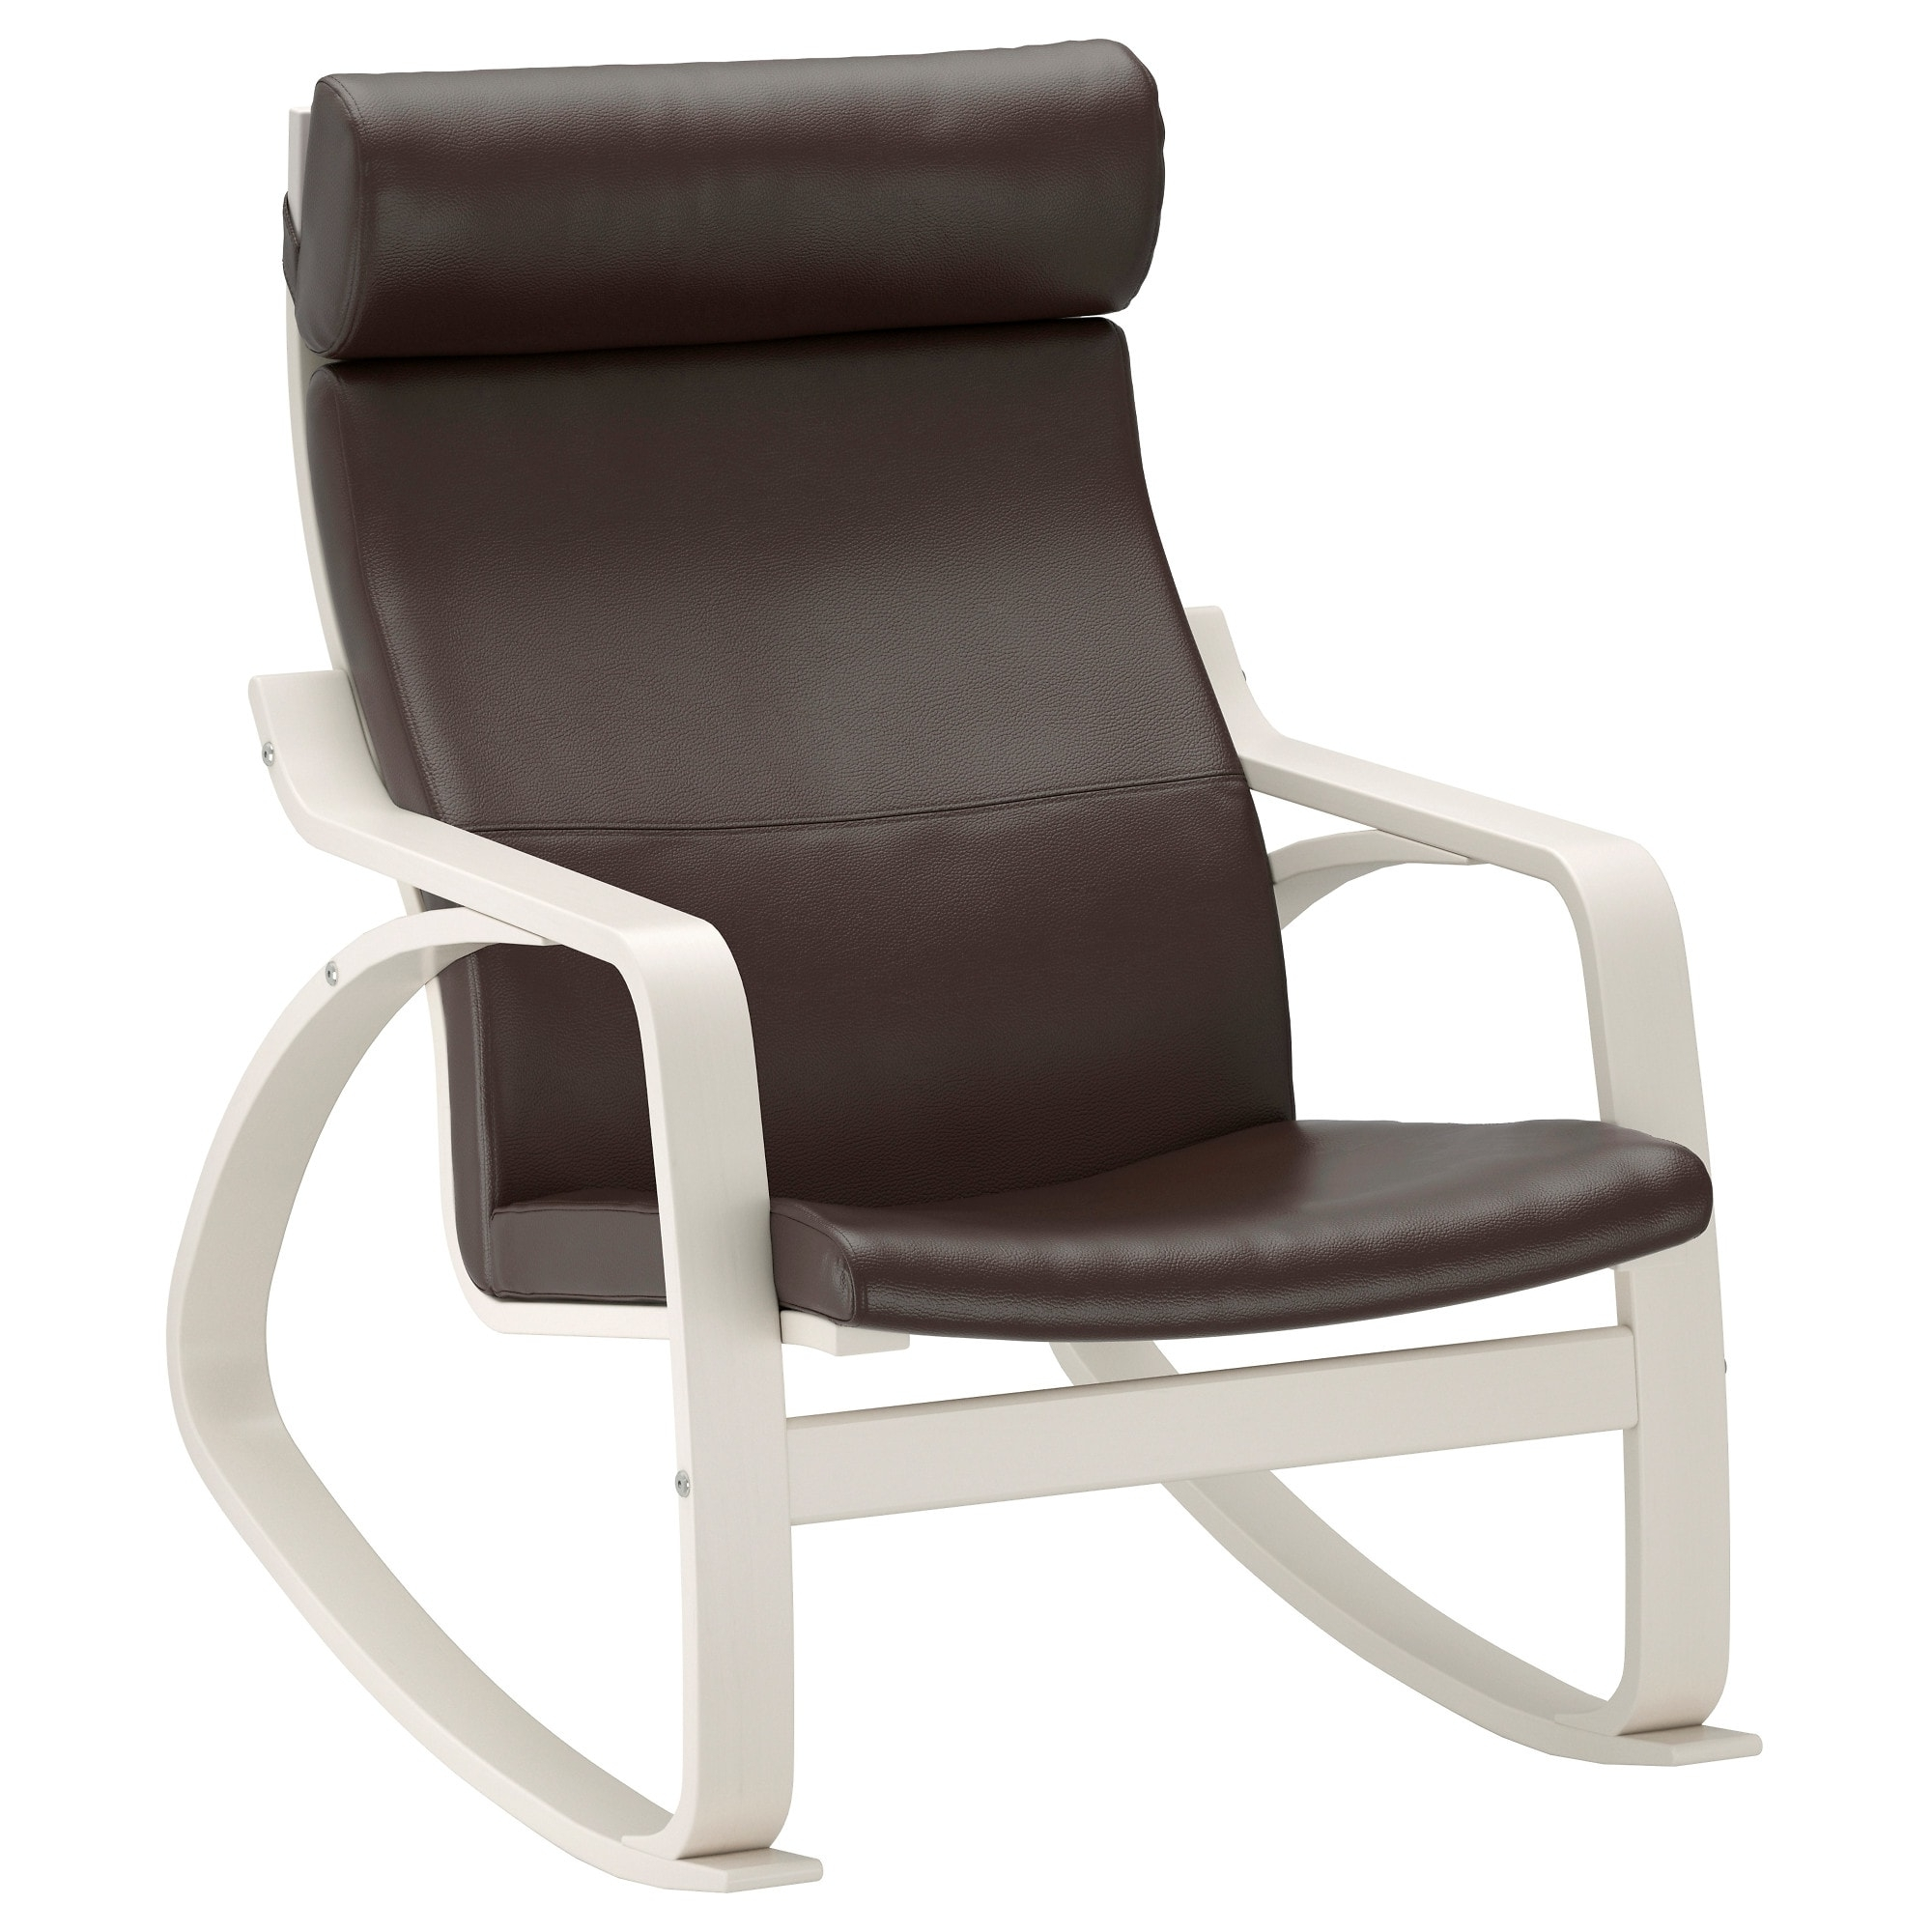 Poäng Rocking Chair White/glose Dark Brown – Ikea In Preferred Ikea Rocking Chairs (View 11 of 15)